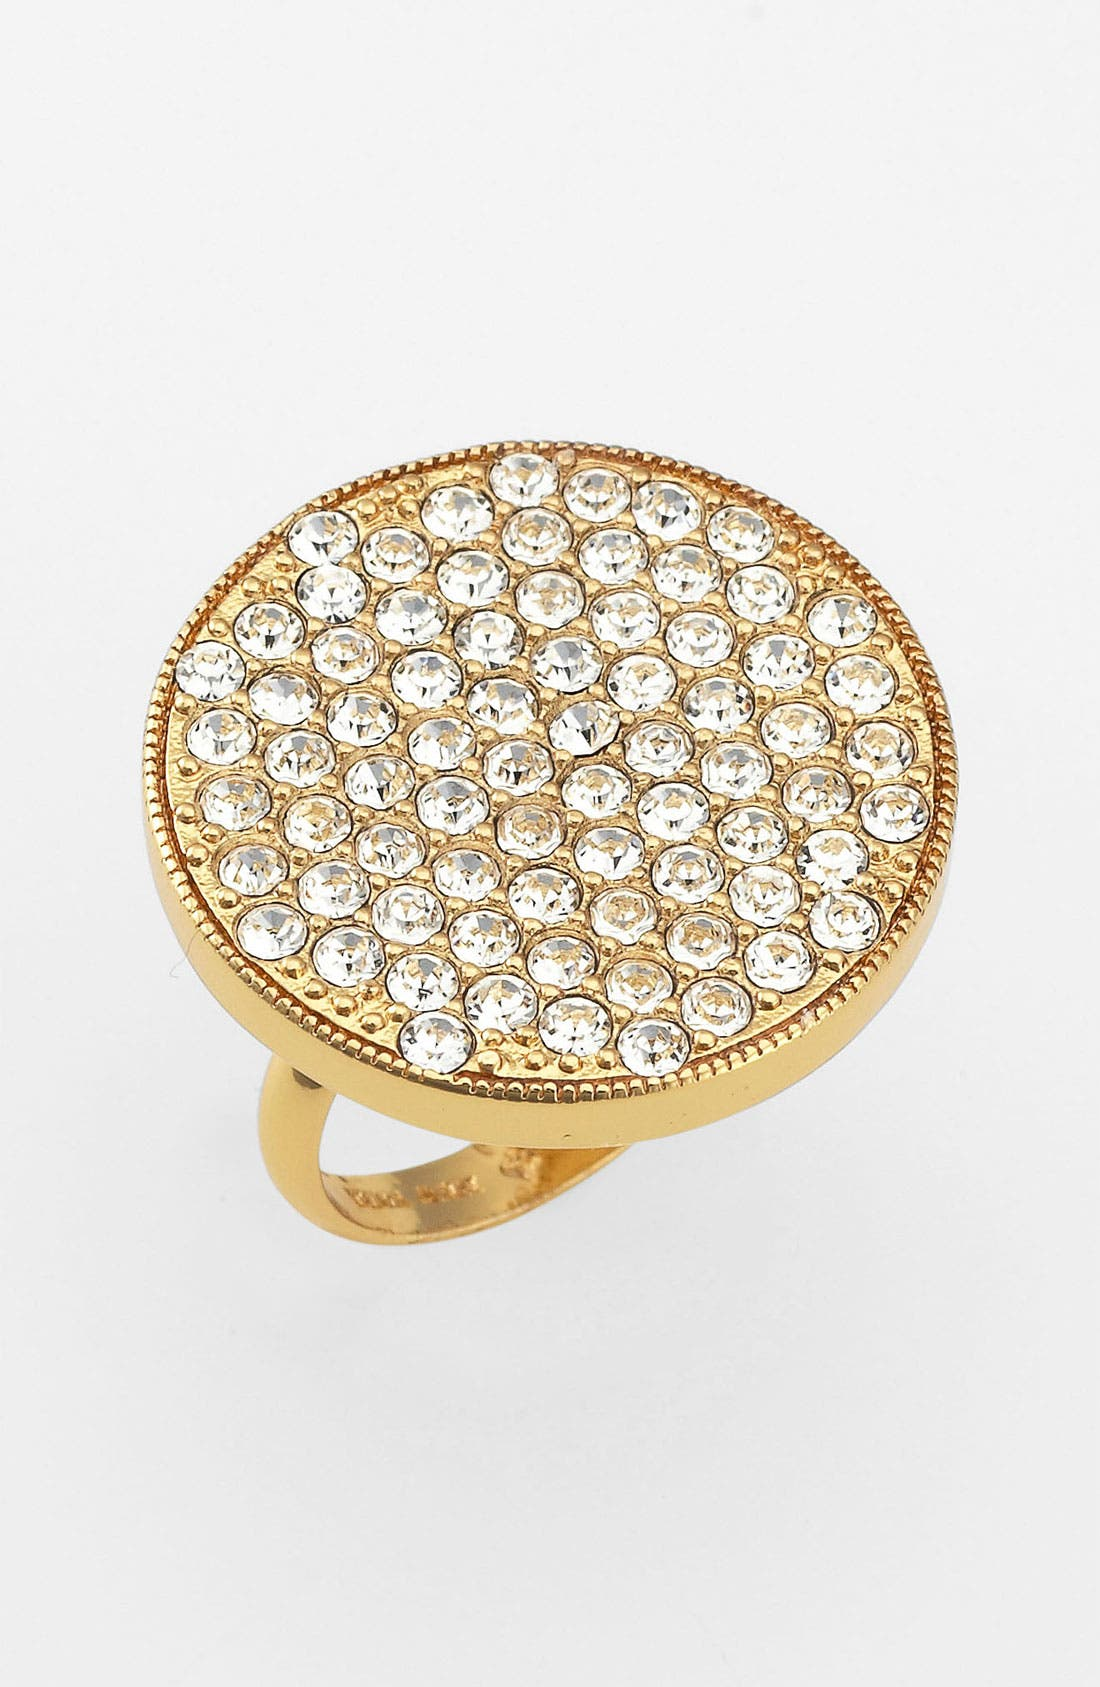 Main Image - kate spade new york 'bright spot' cocktail ring